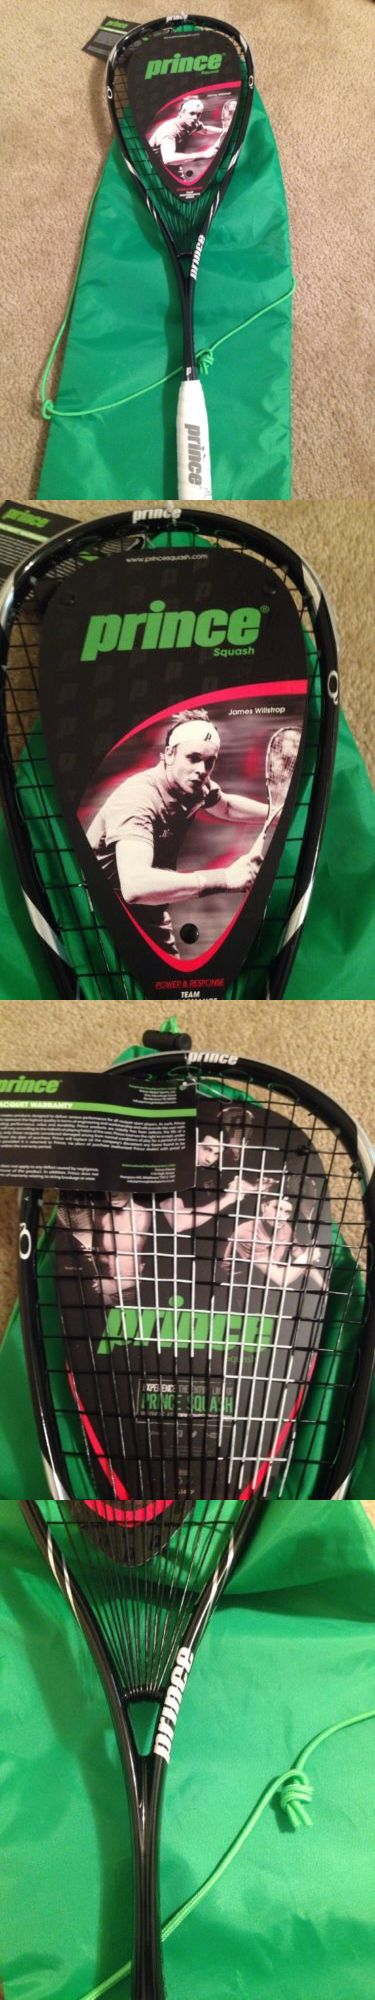 Squash 62166: Prince O3 Squash Racqet -> BUY IT NOW ONLY: $135 on eBay!